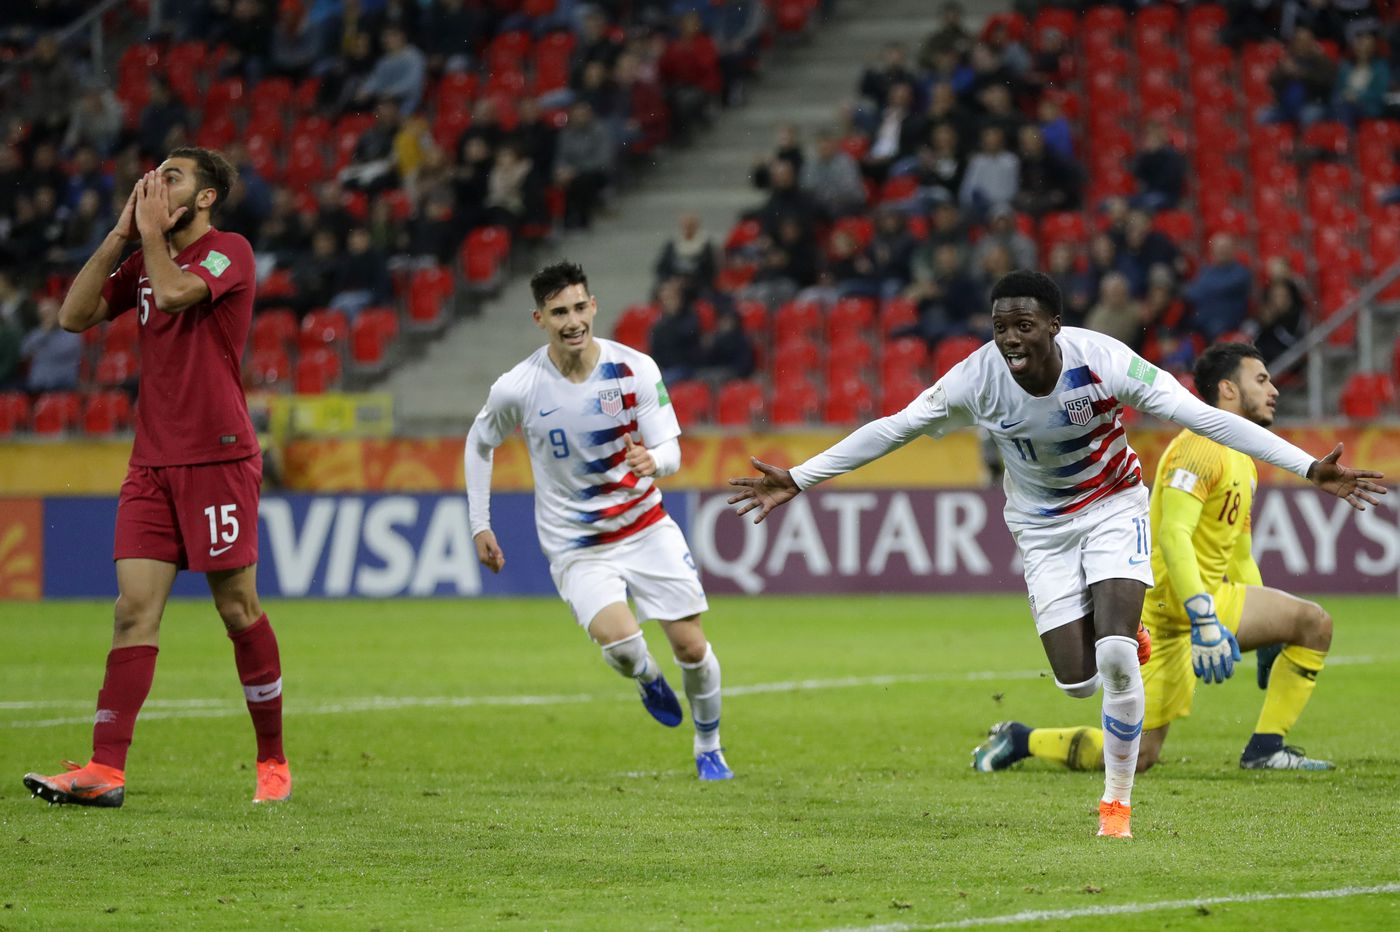 Tim Weah goal sends U.S. to under-20 World Cup knockout rounds with 1-0 win over Qatar